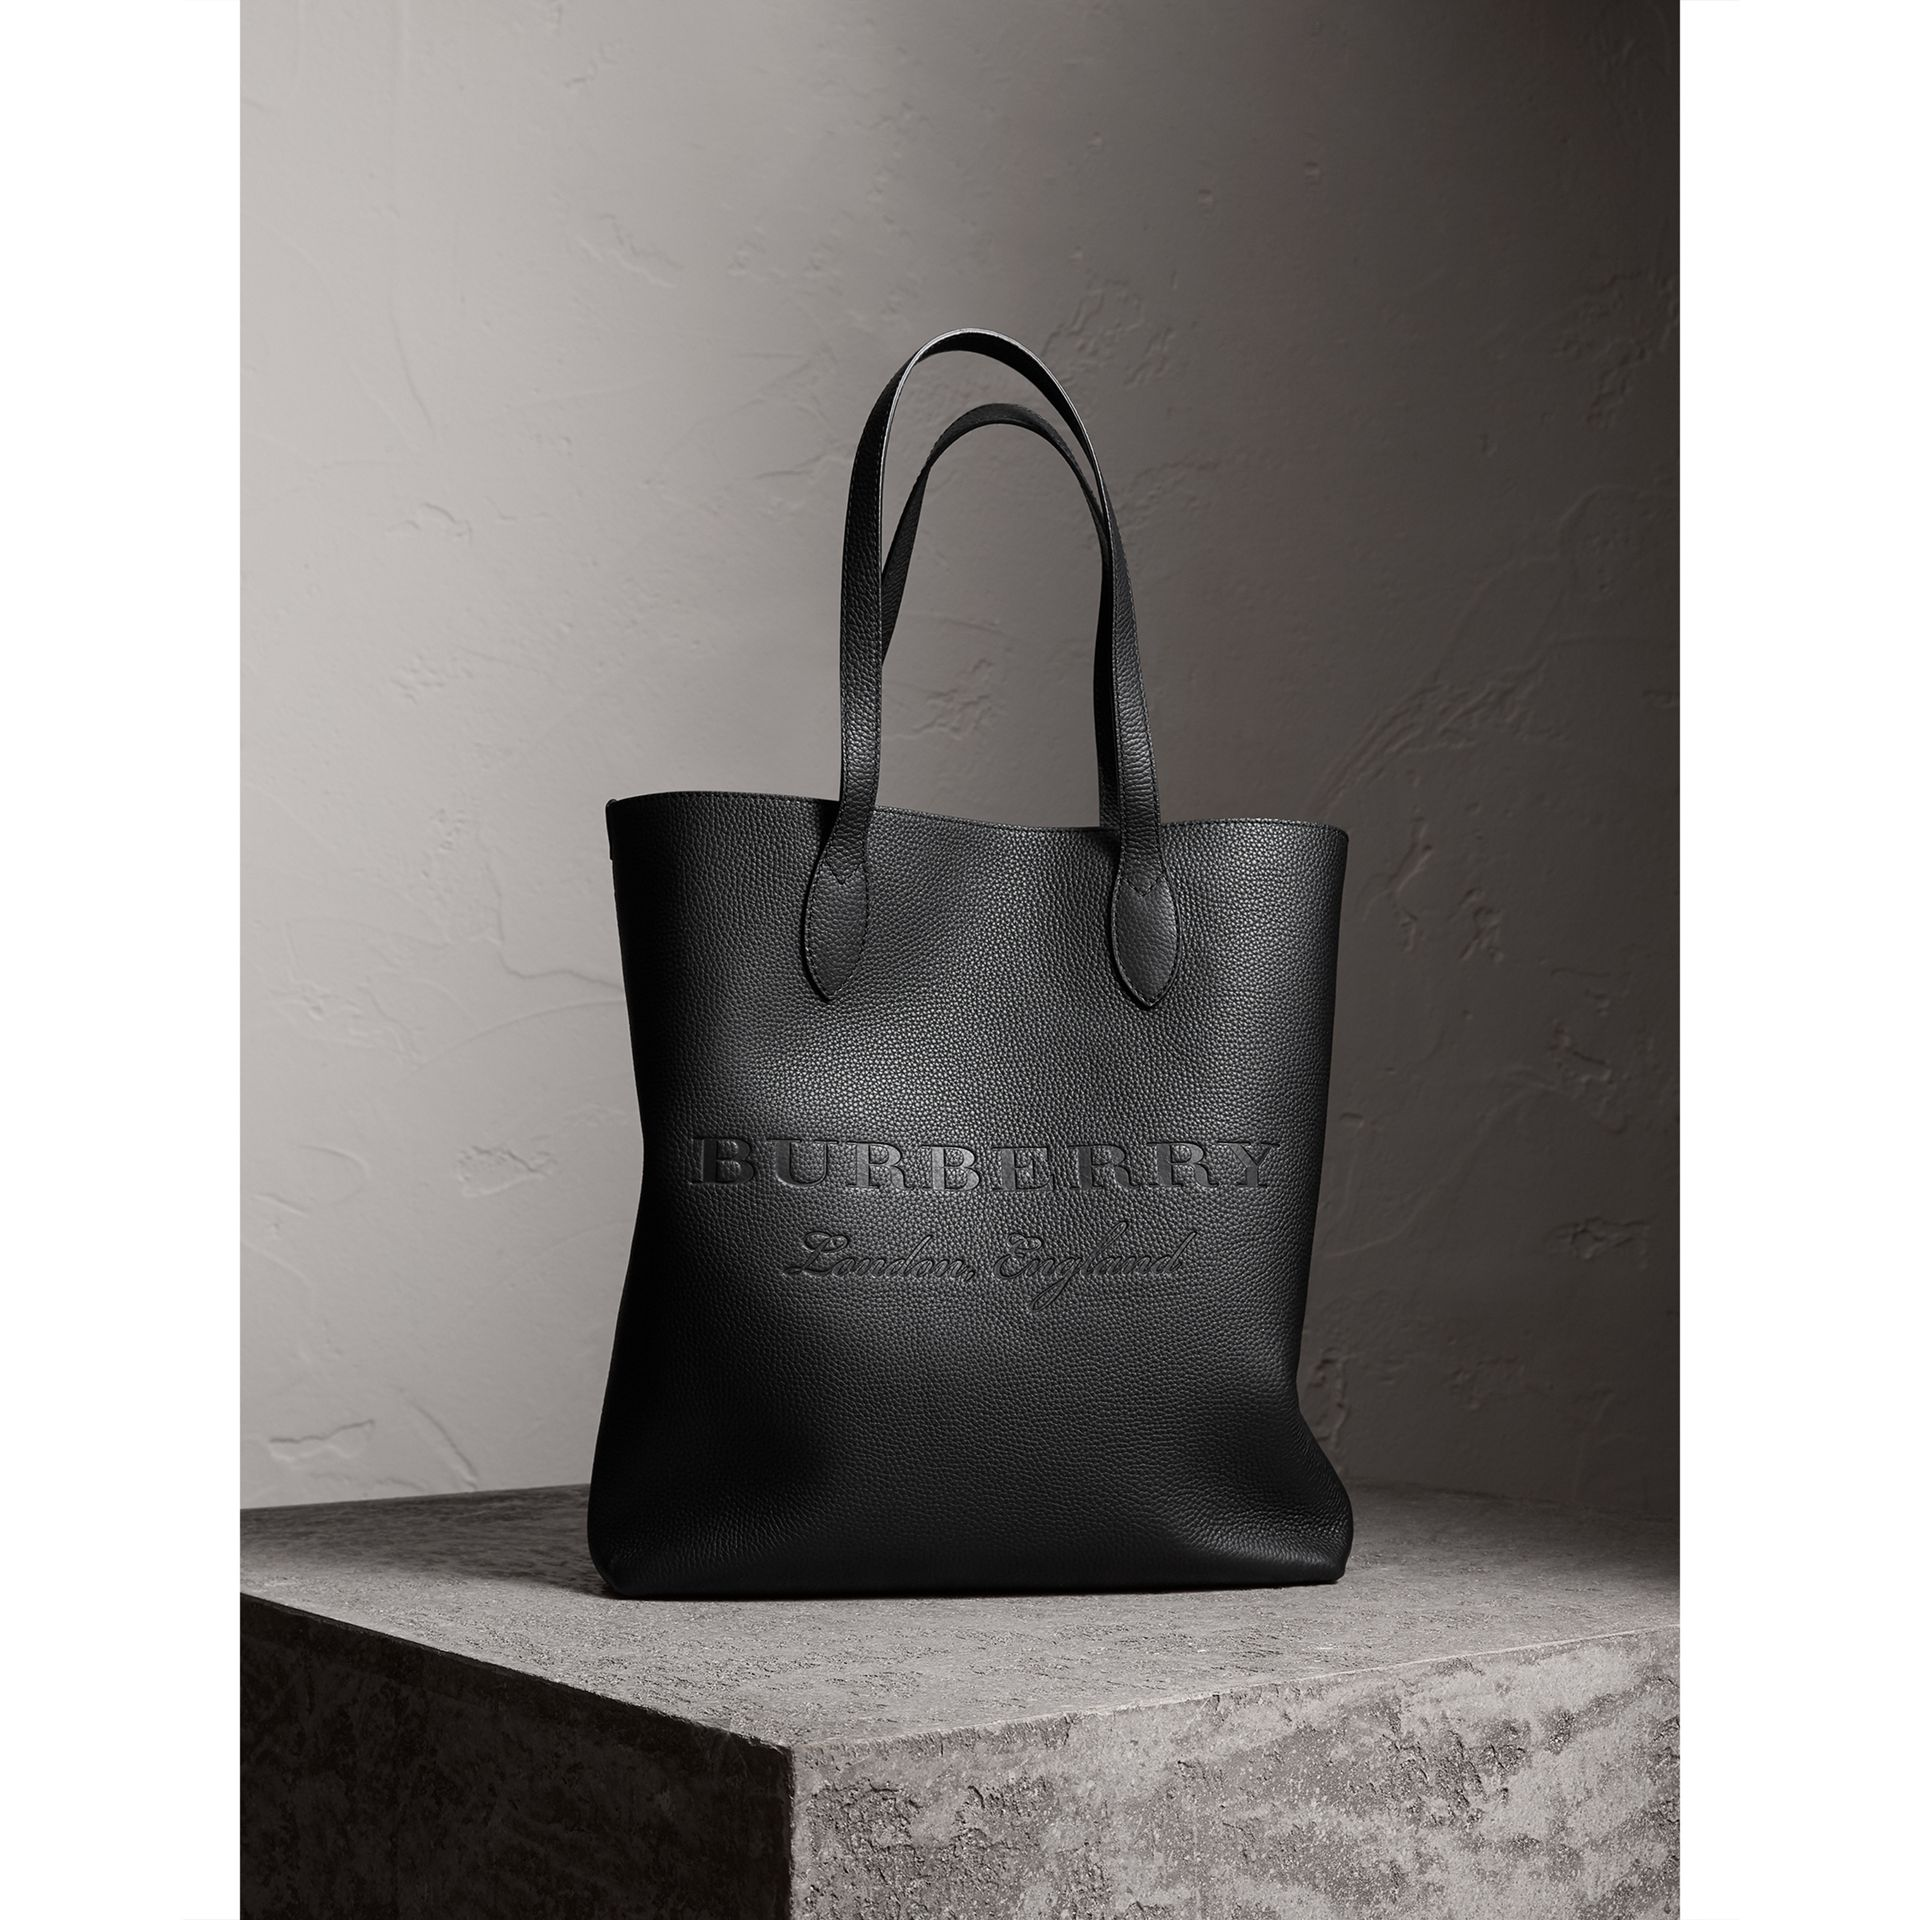 Sac tote en cuir estampé (Noir) | Burberry - photo de la galerie 0